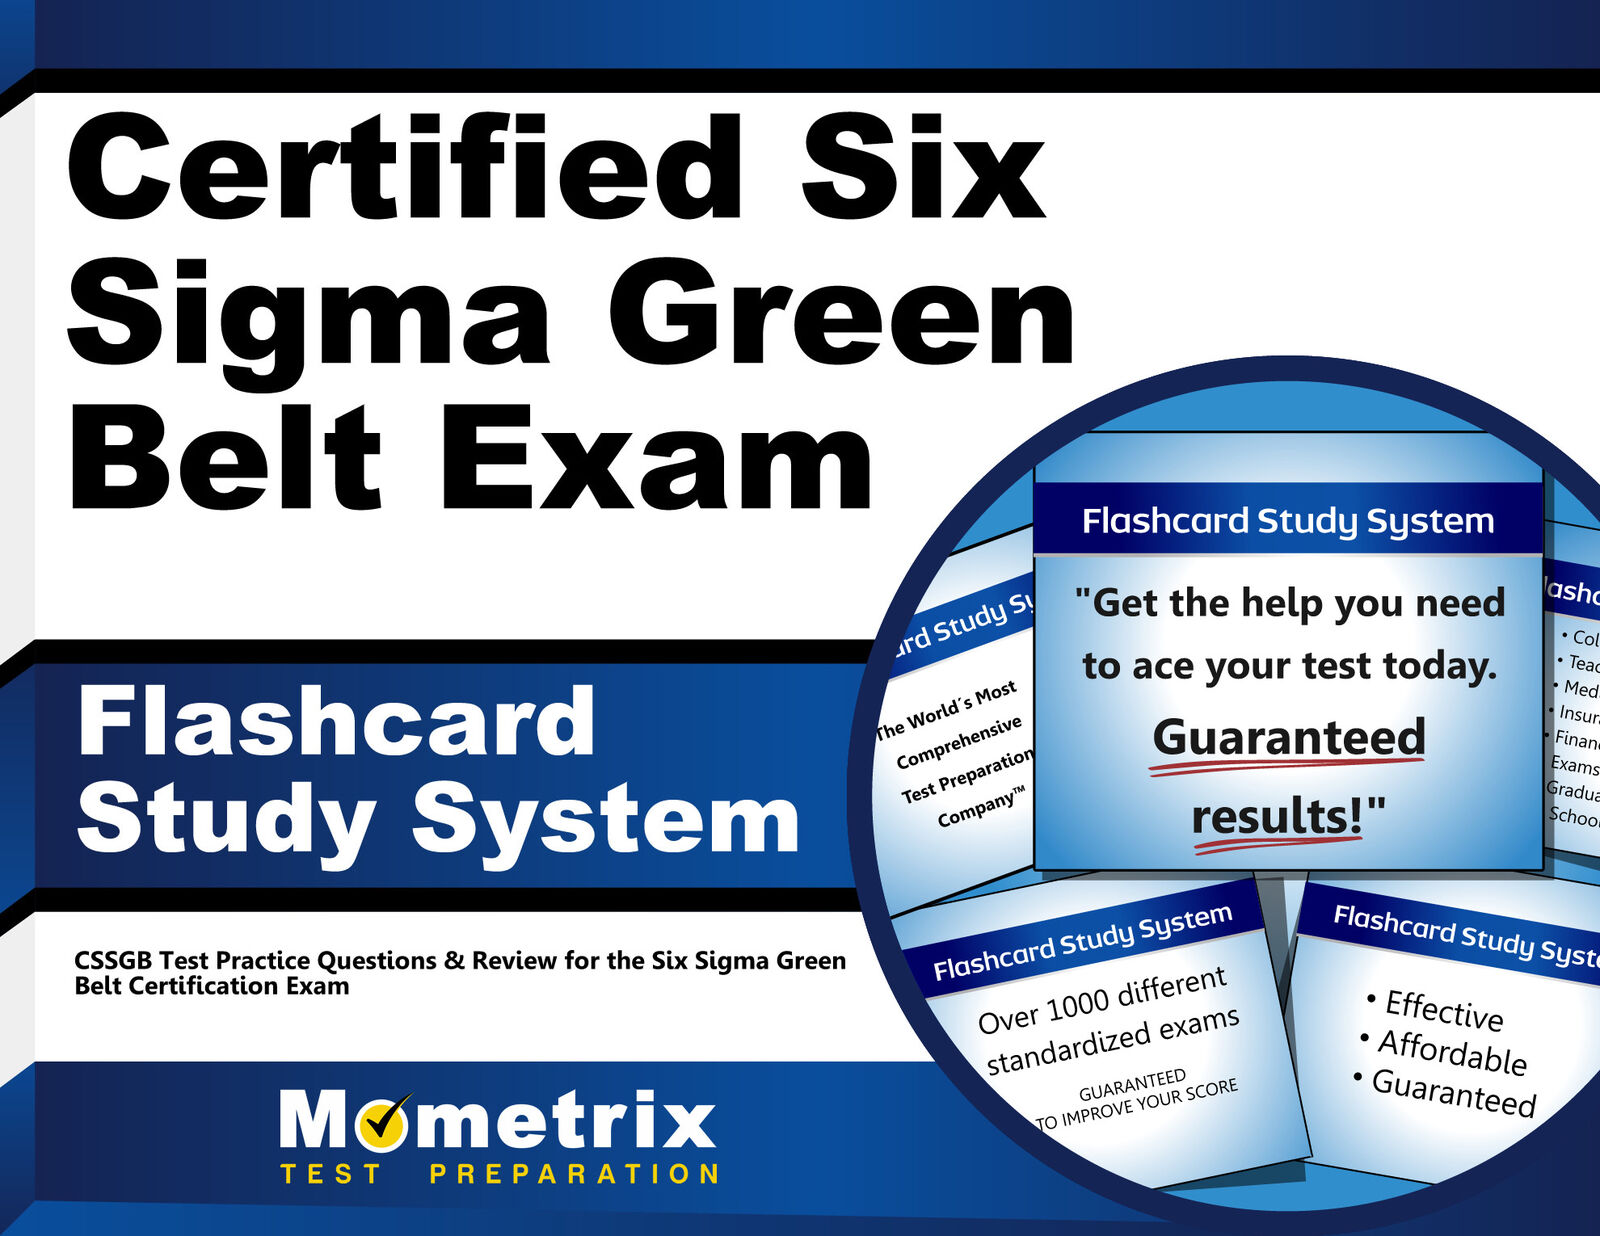 Certified six sigma green belt exam flashcard study system cssgb picture 1 of 1 1betcityfo Gallery